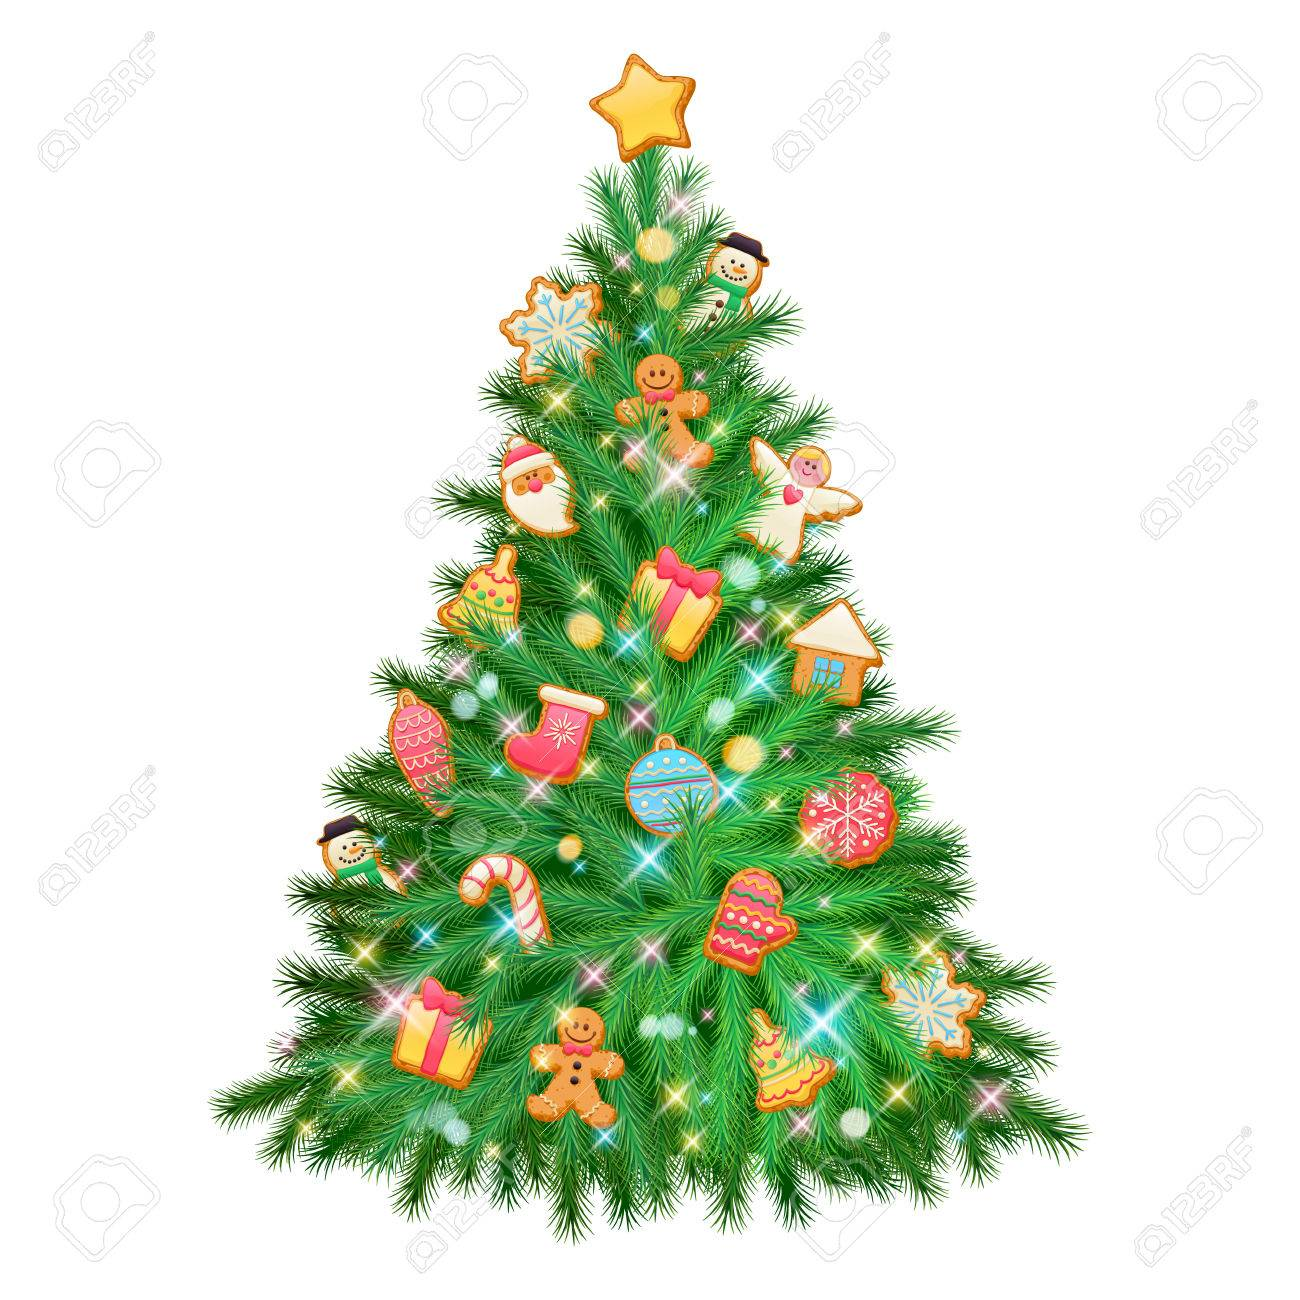 Beautiful Glowing Shiny Colorful Christmas Tree With Decorations ...